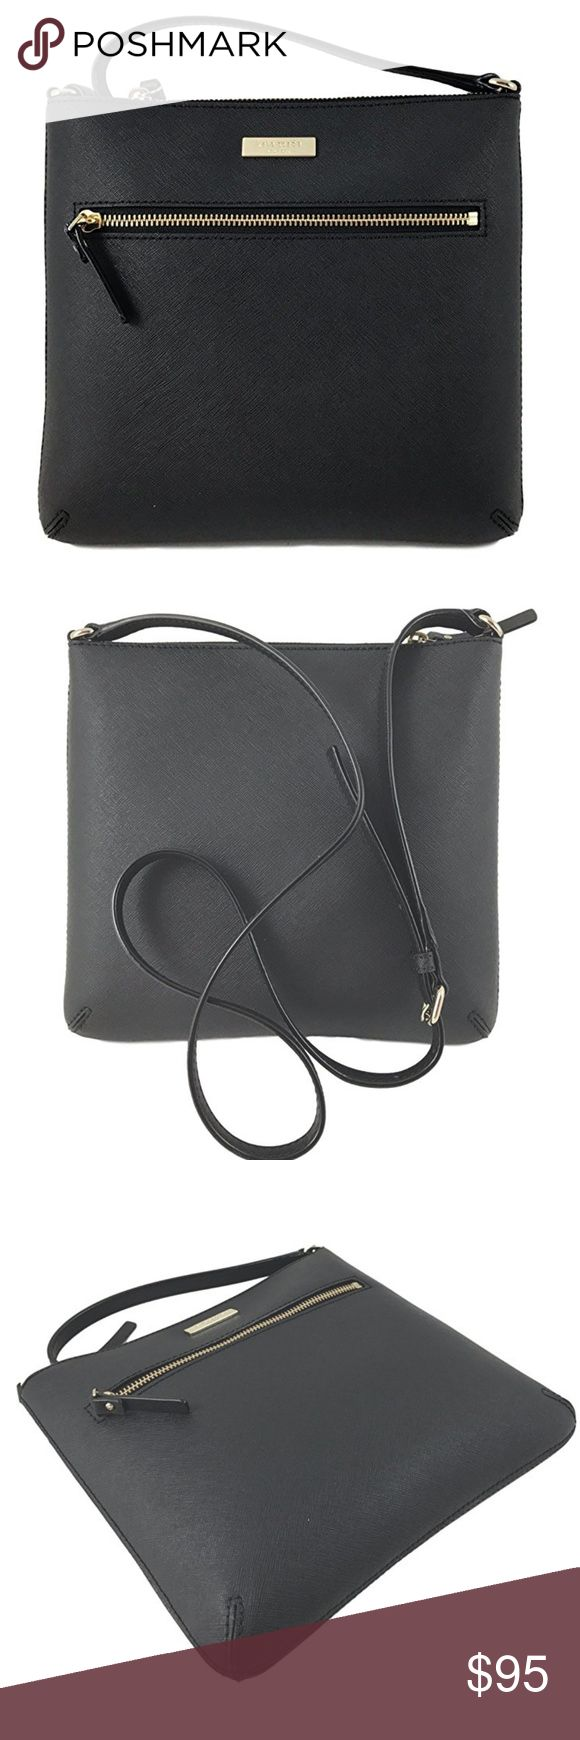 "Kate Spade Laurel Way Rima Crossbody Best Price Online!! Saffiano Leather with gold tone hardware. Interior: Fabric lining, 1 zip pocket, and 1 slip pocket. Exterior 1 full length zipper pocket. Approximate dimensions: 10"" (L) x 9"" (H) x 2"" (D) with Adjustable Crossbody strap drops 21""-23"" Top zip closure kate spade Bags"